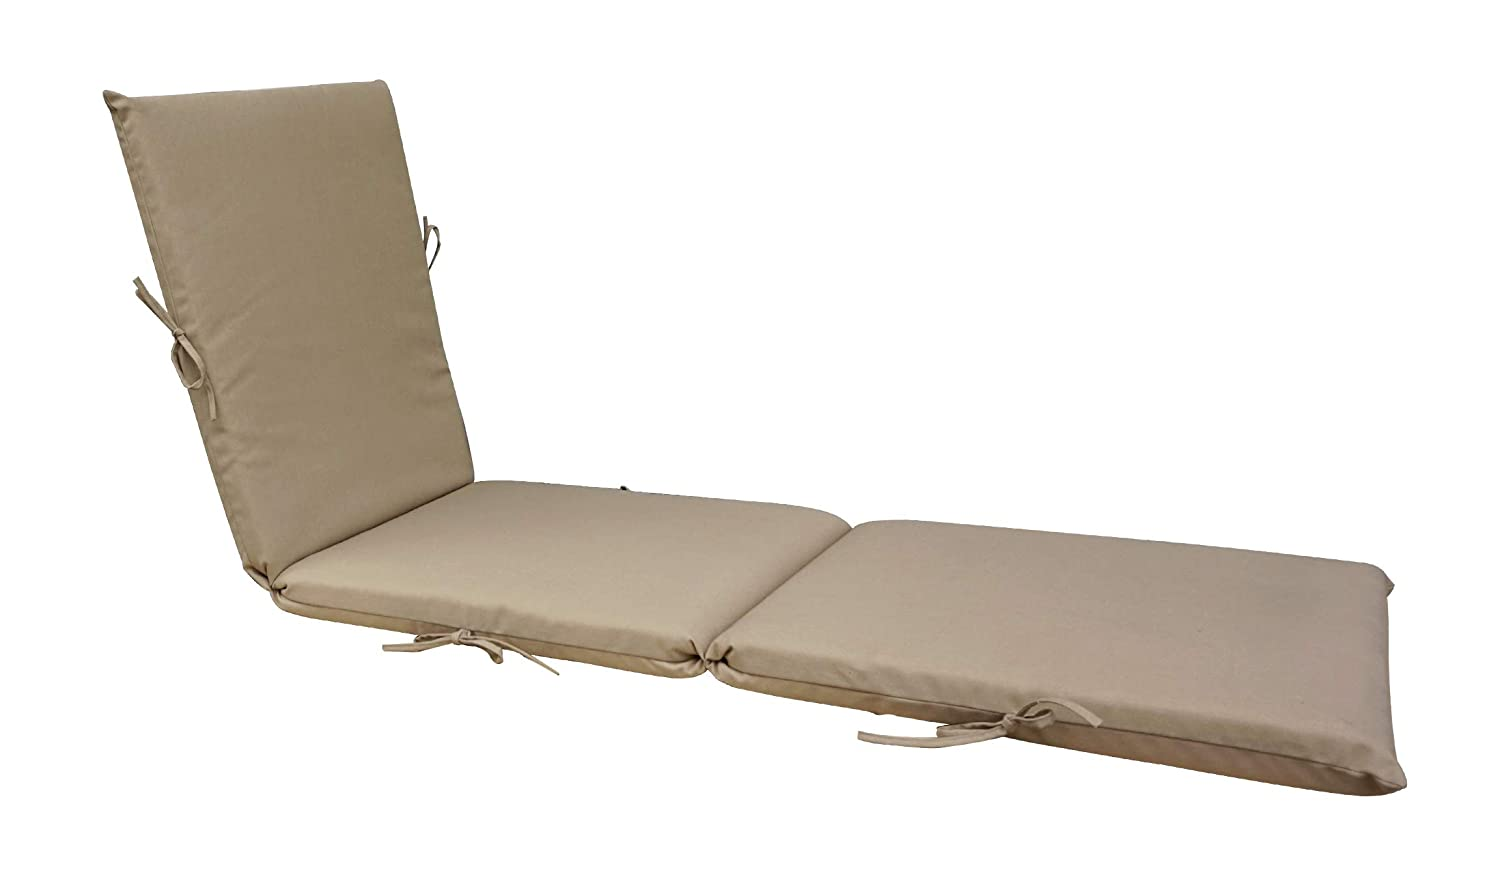 Bossima Indoor/Outdoor Light Khaki Chaise Lounge Cushion,Spring/Summer Seasonal Replacement Cushions